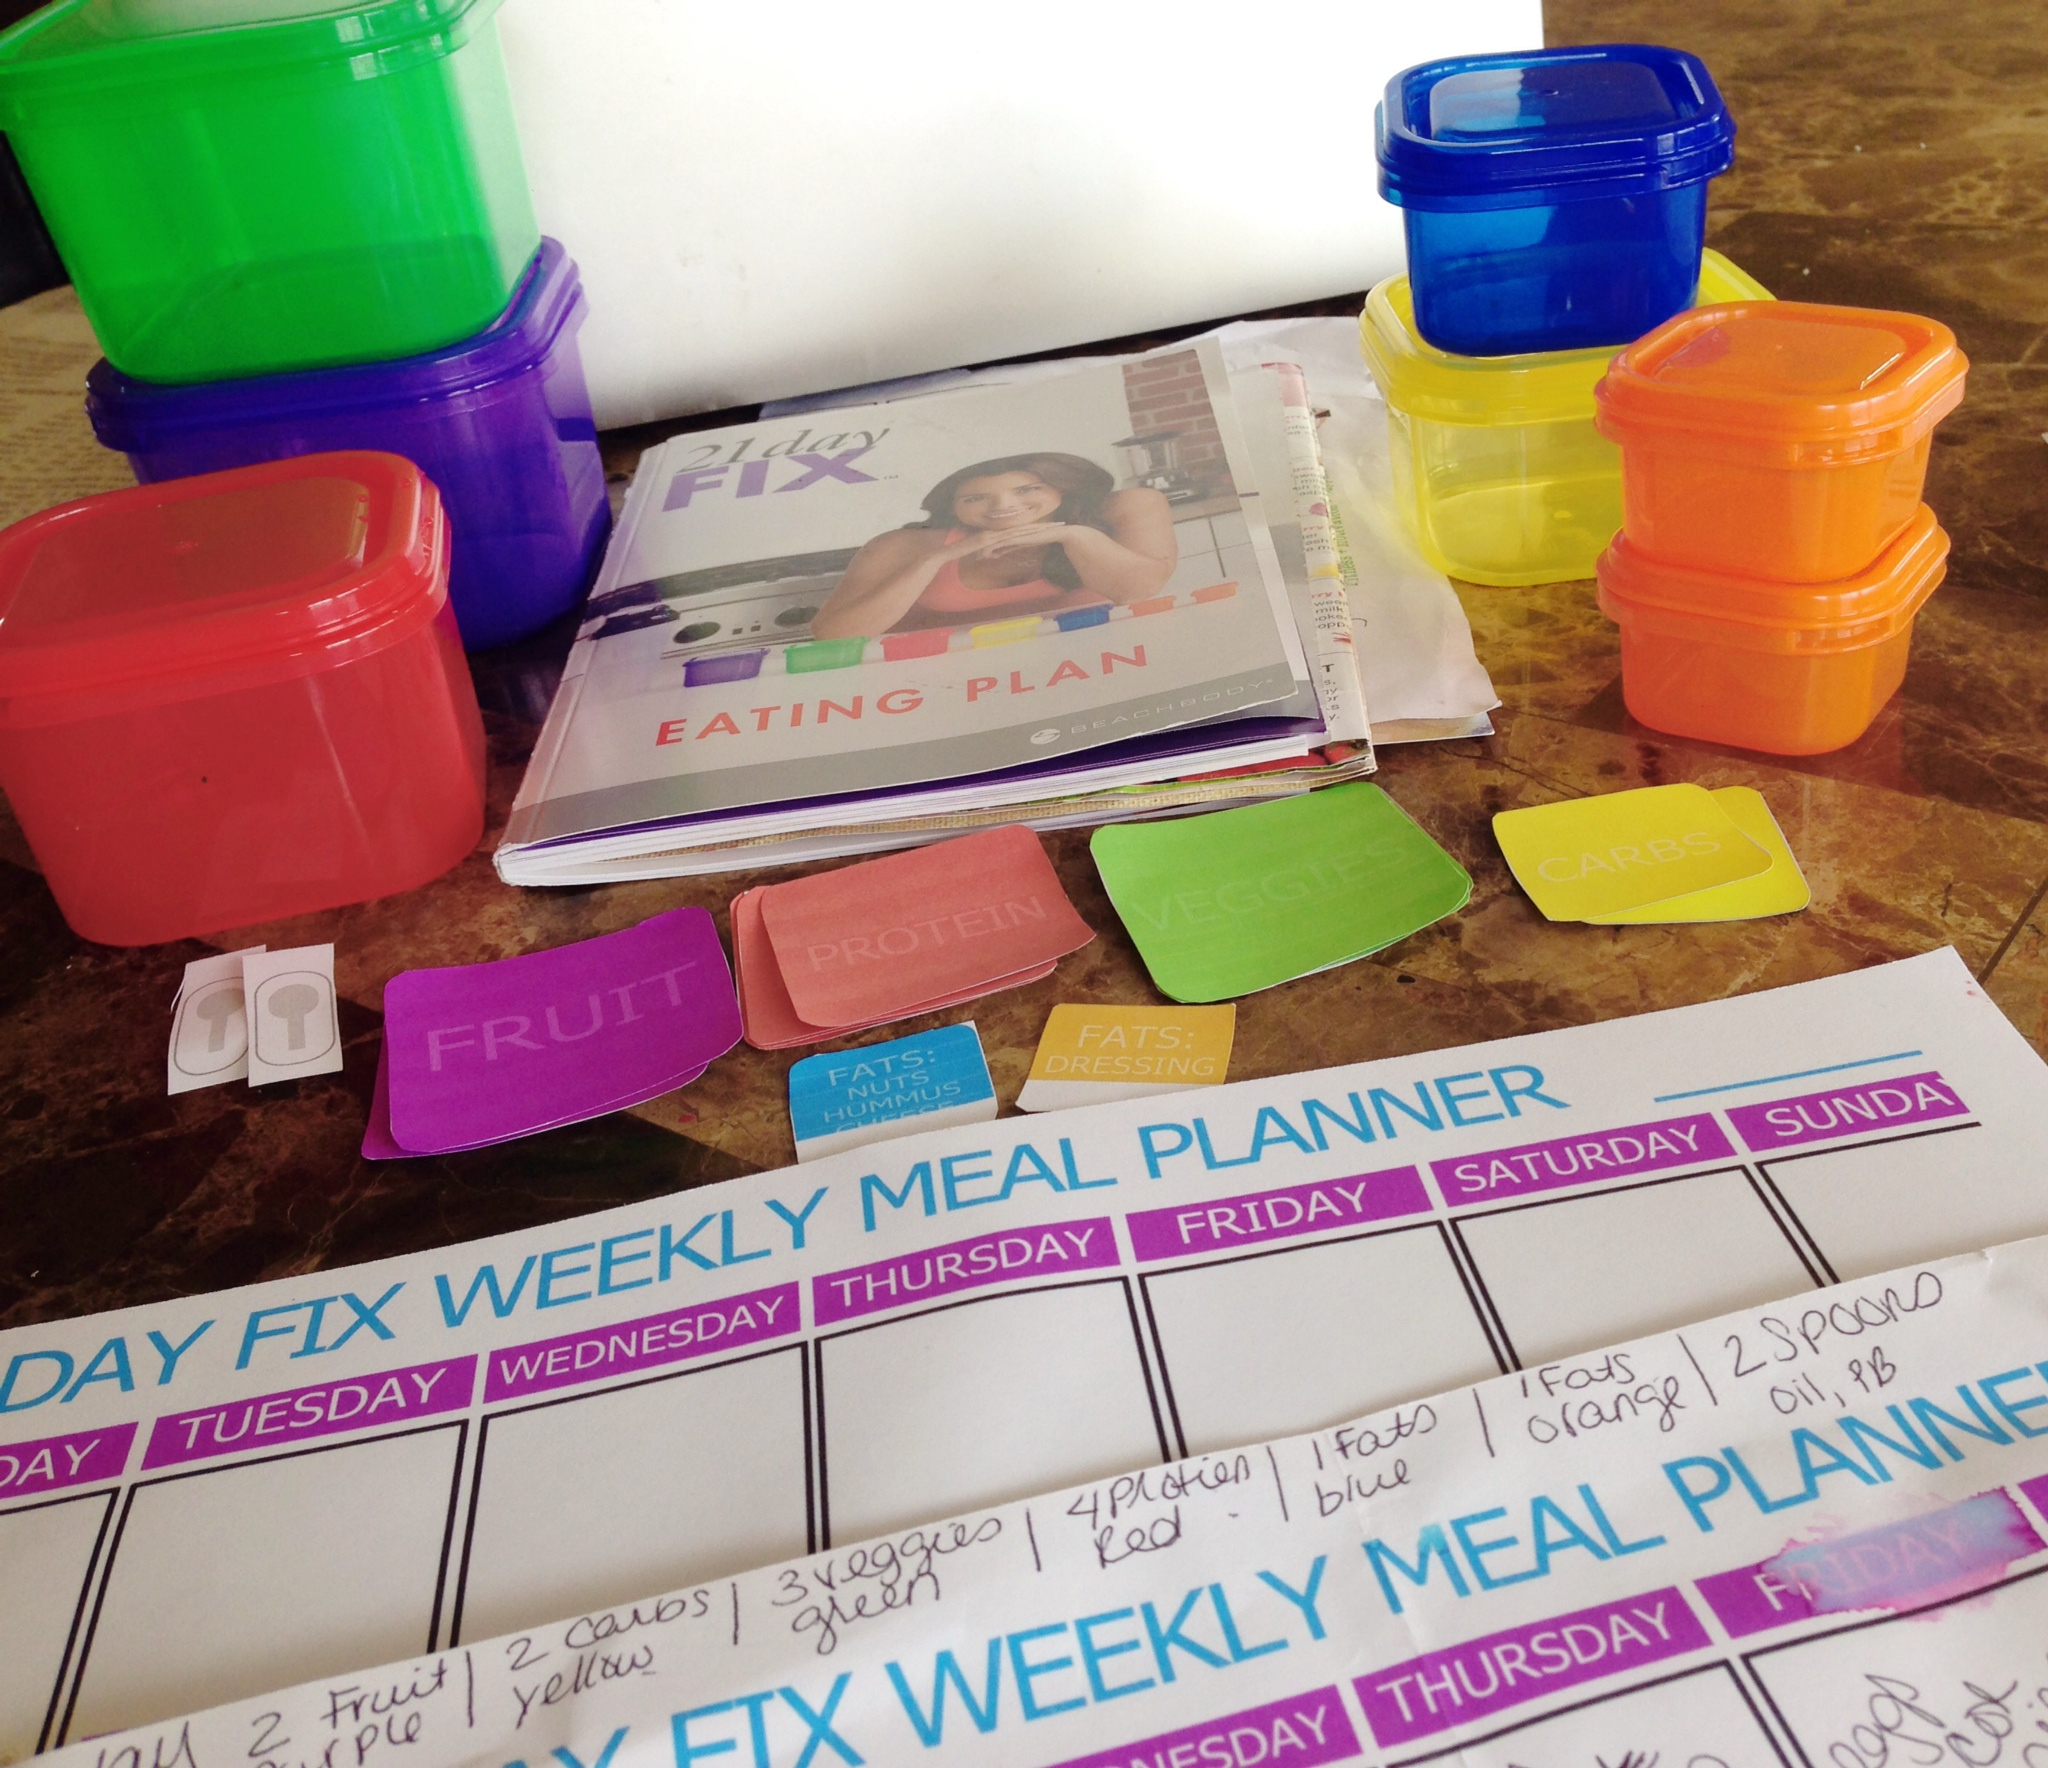 21 Day Fix Meal Planning Organization